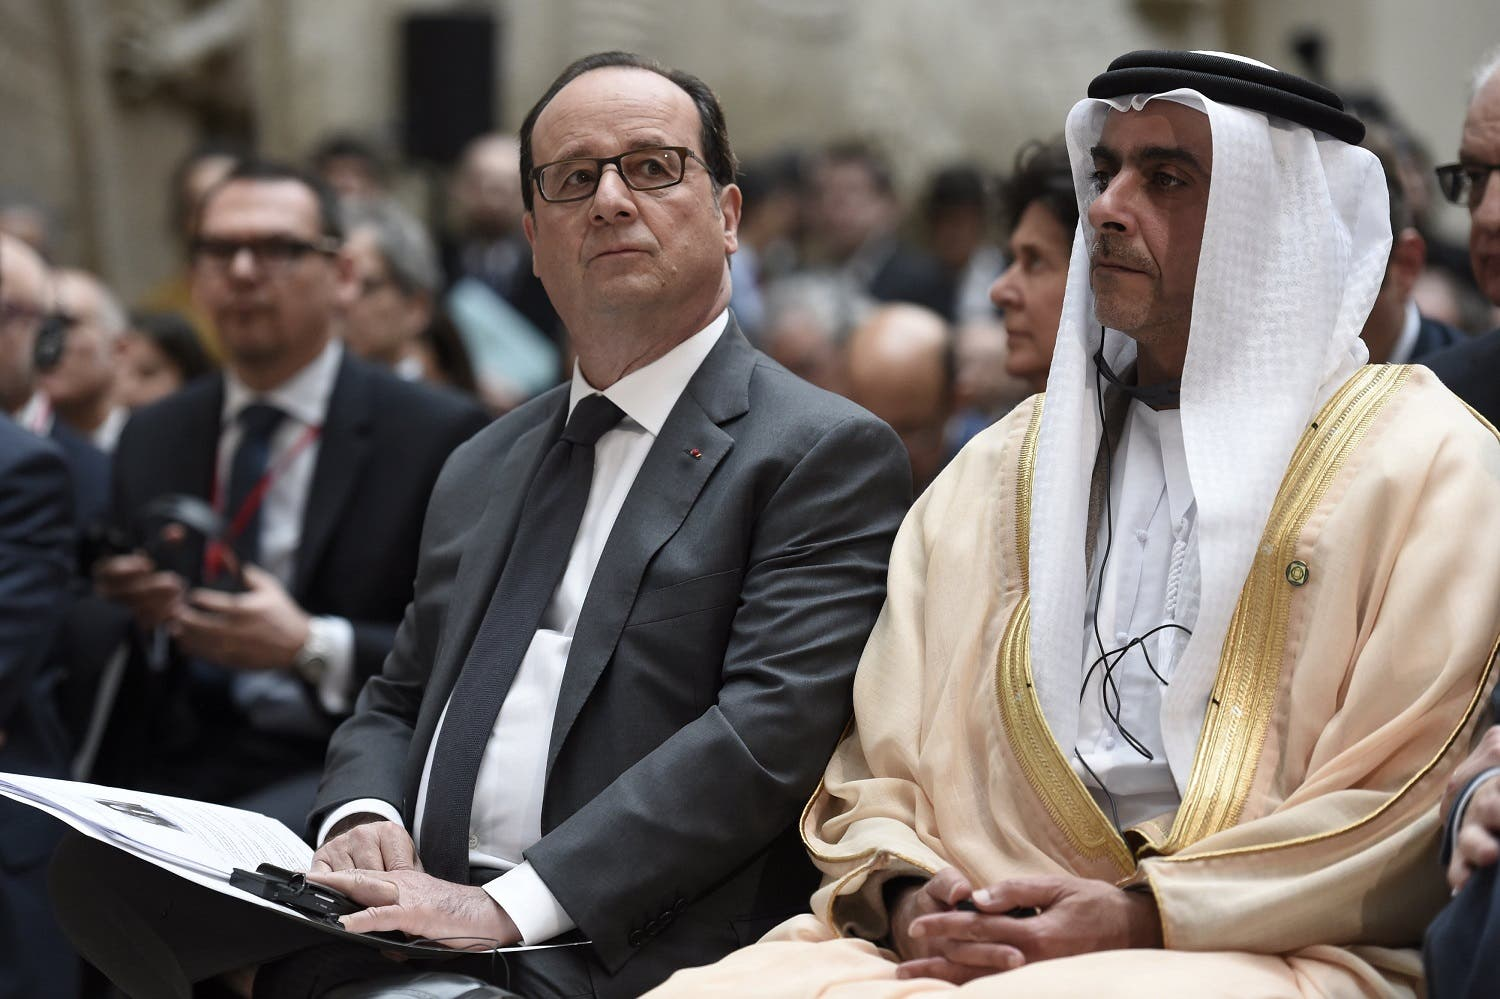 French President Francois Hollande and United Arab Emirates Minister of Interior Sheikh Saif Bin Zayed Al-Nahyan attend the International Donors' Conference for the Protection of Heritage in Armed Conflict at the Louvre Museum in Paris. (Reuters)